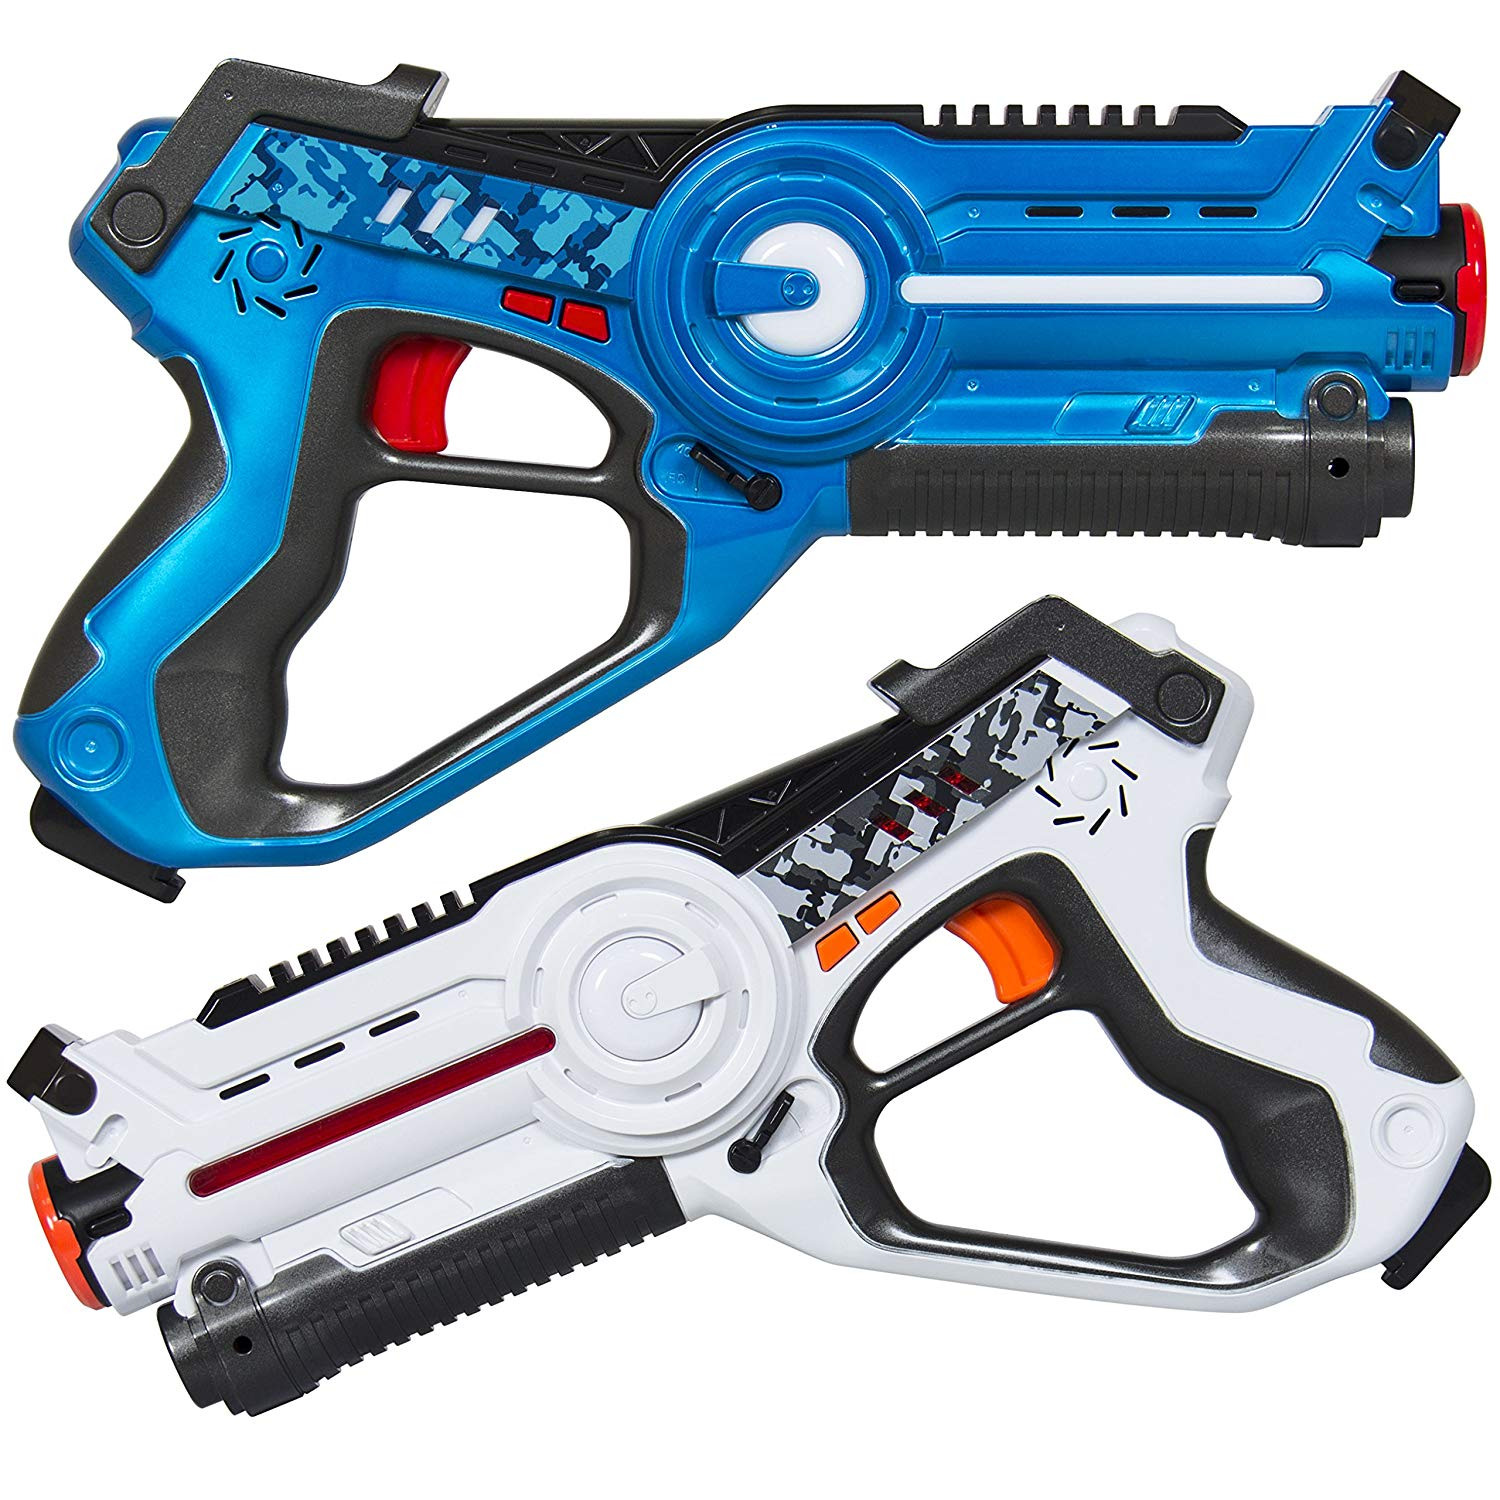 Kids Interactive Blaster Tag Set w/ Multiplayer Mode, 2 Pack